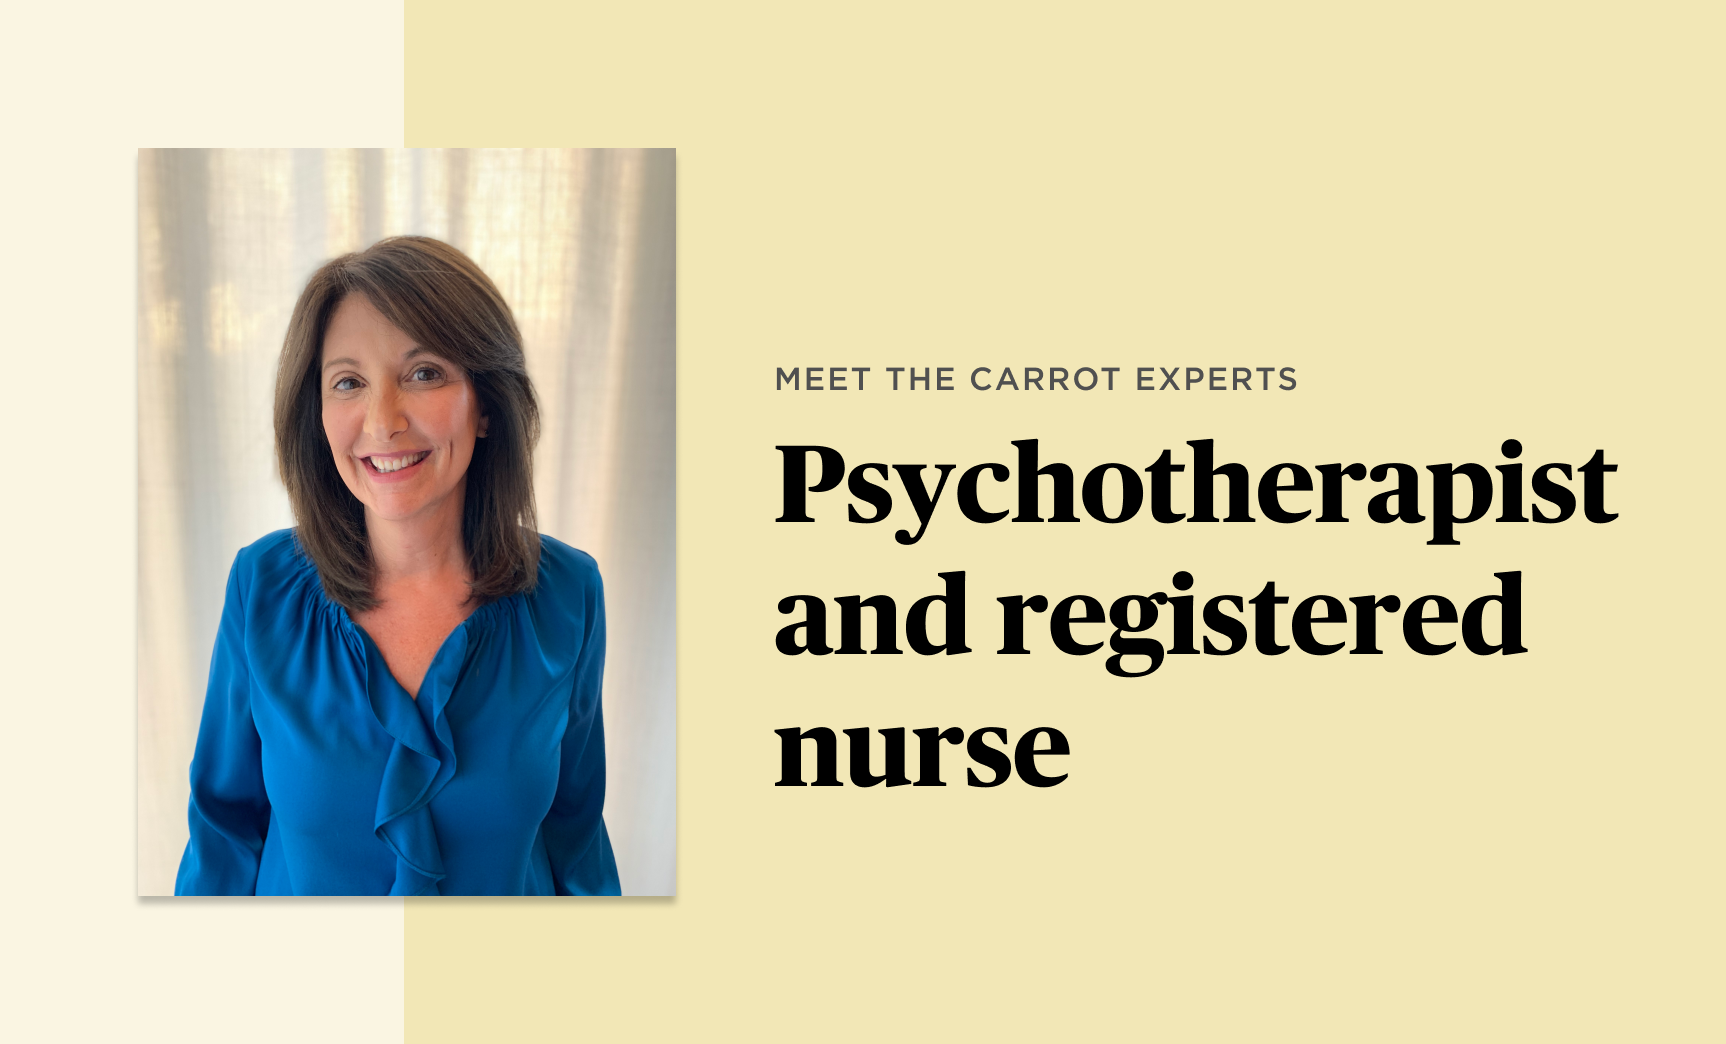 Meet the Carrot Experts: Robyn Shapiro, MFT, RN